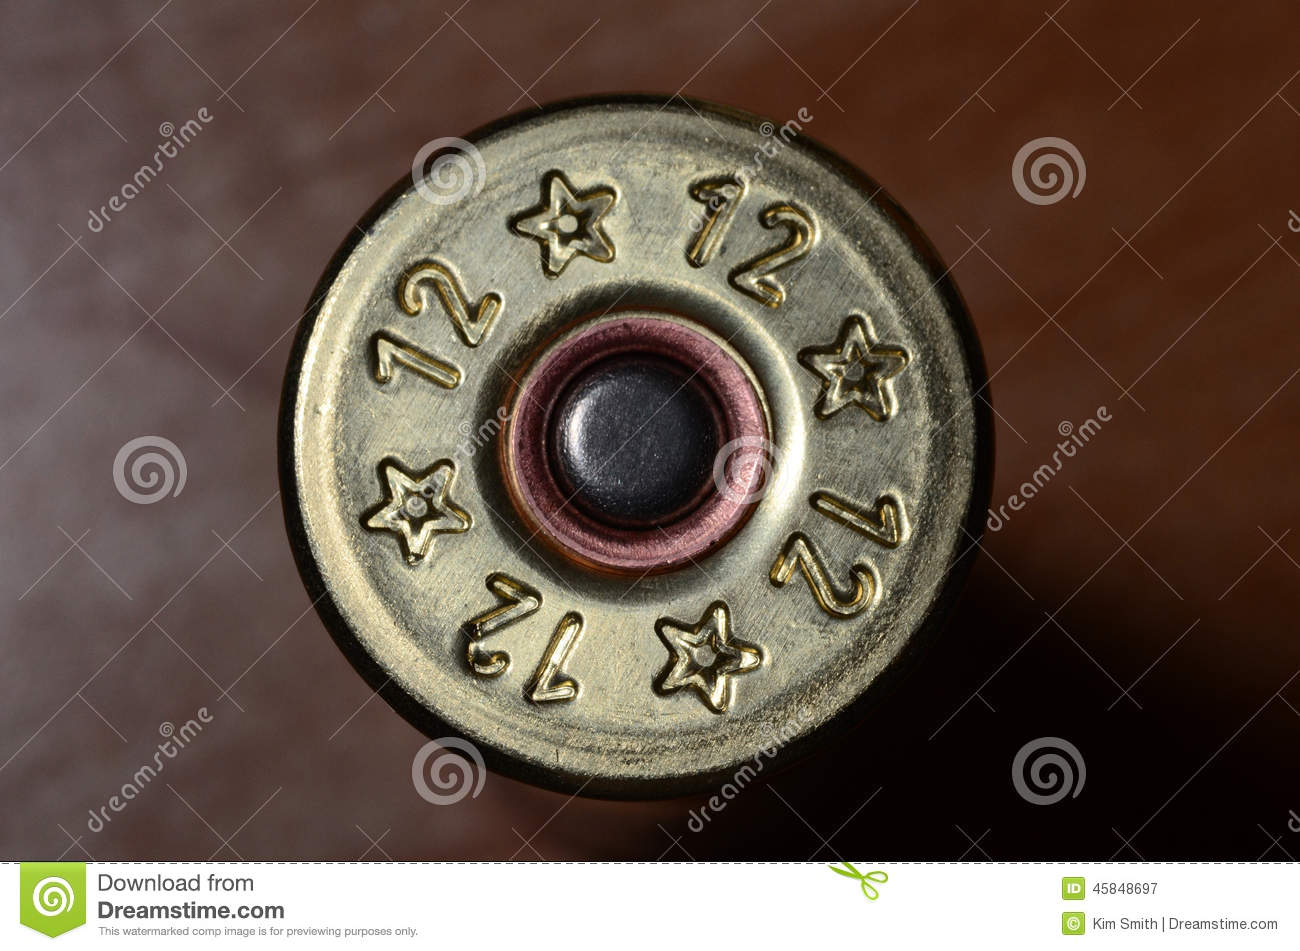 shotgun shell background - photo #37